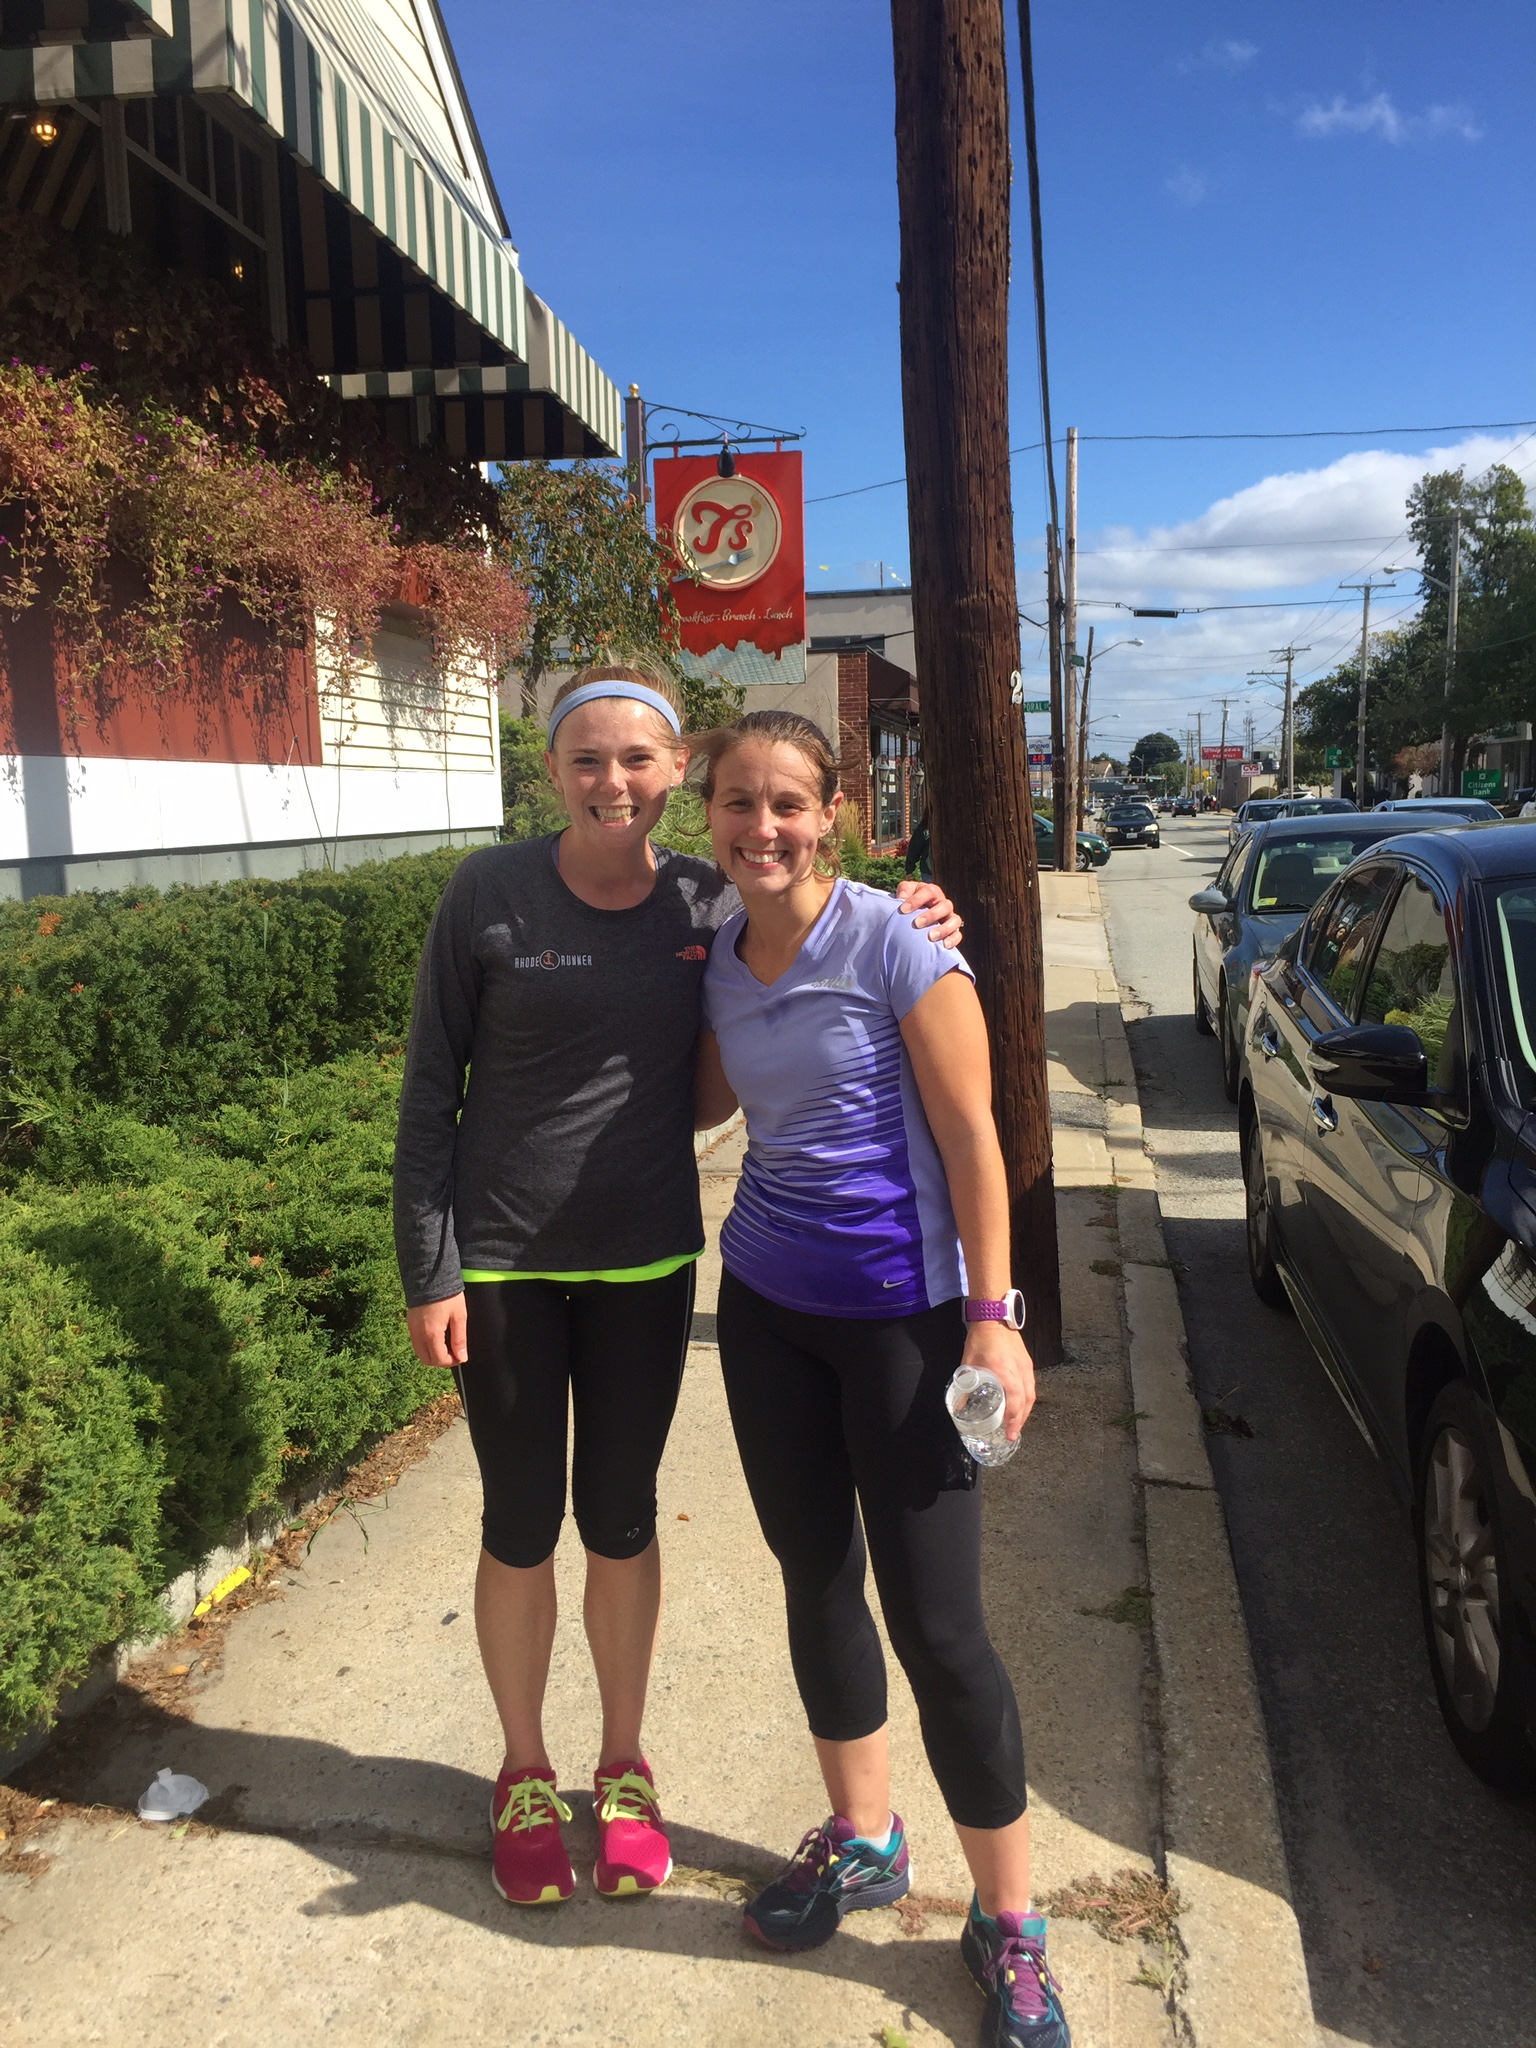 Me and Stacia after finally arriving in Cranston at T's restaurant with our 20 miler complete! Philly here we come!